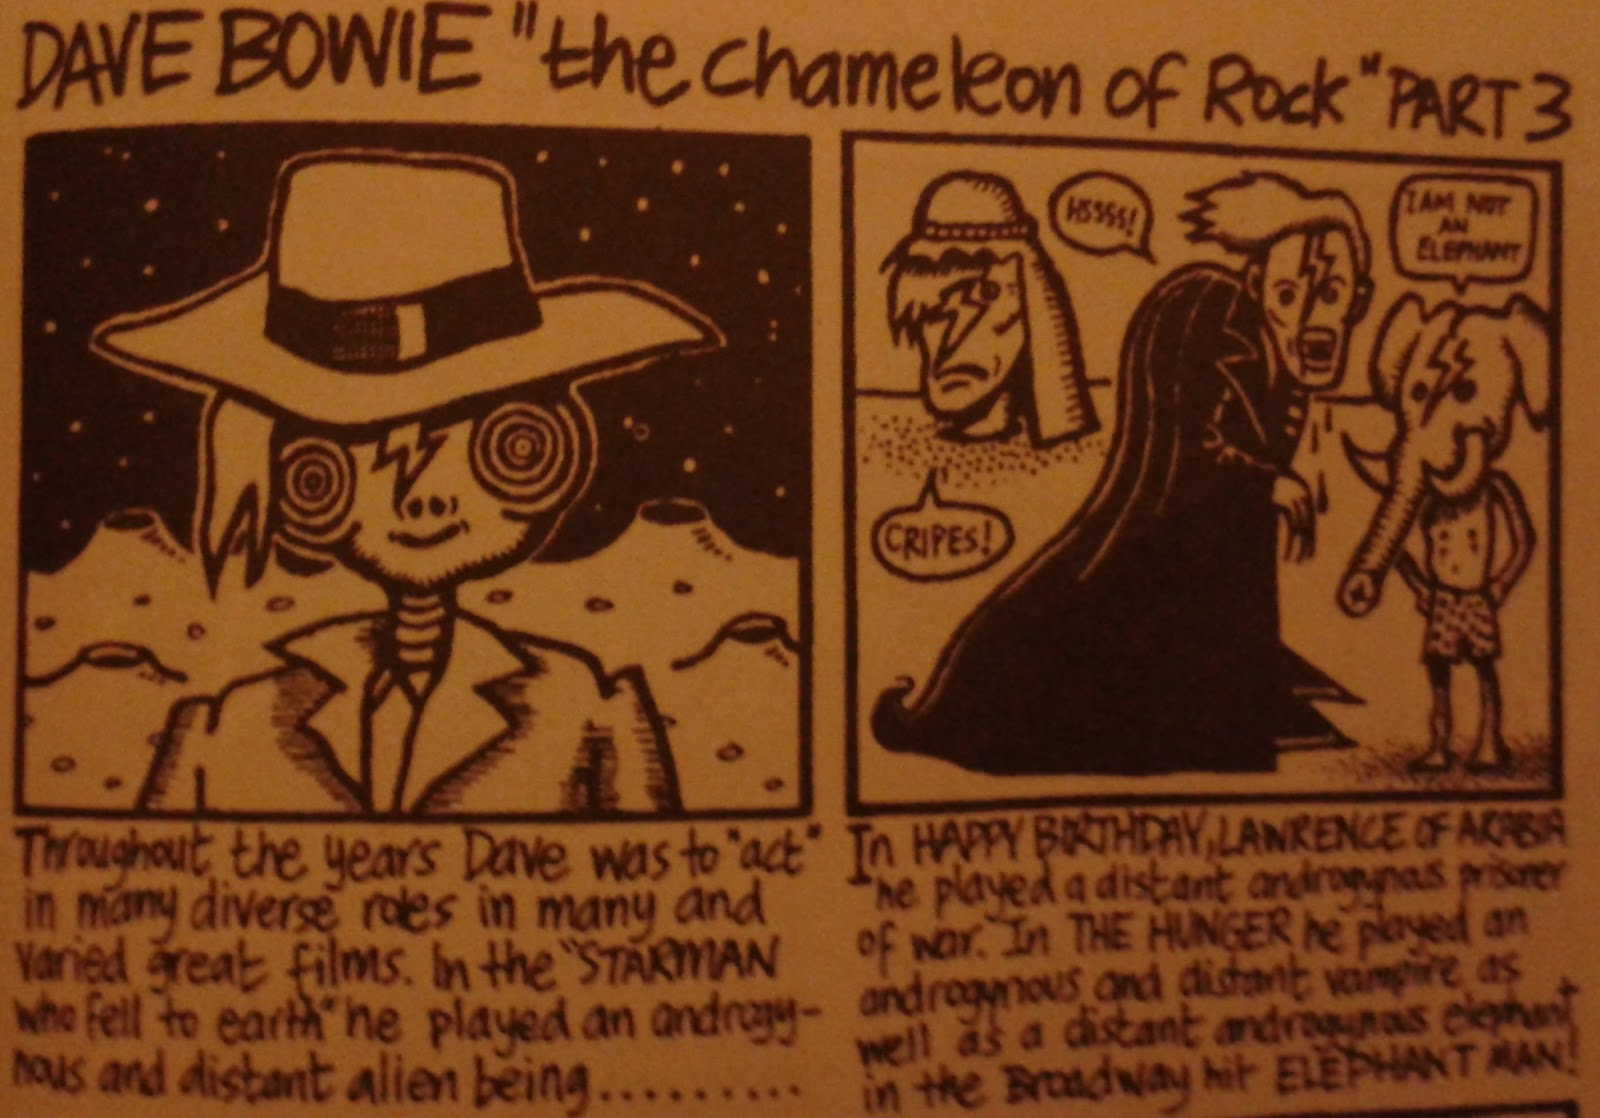 David Bowie's film career, as seen by the NME's Great Pop Things.